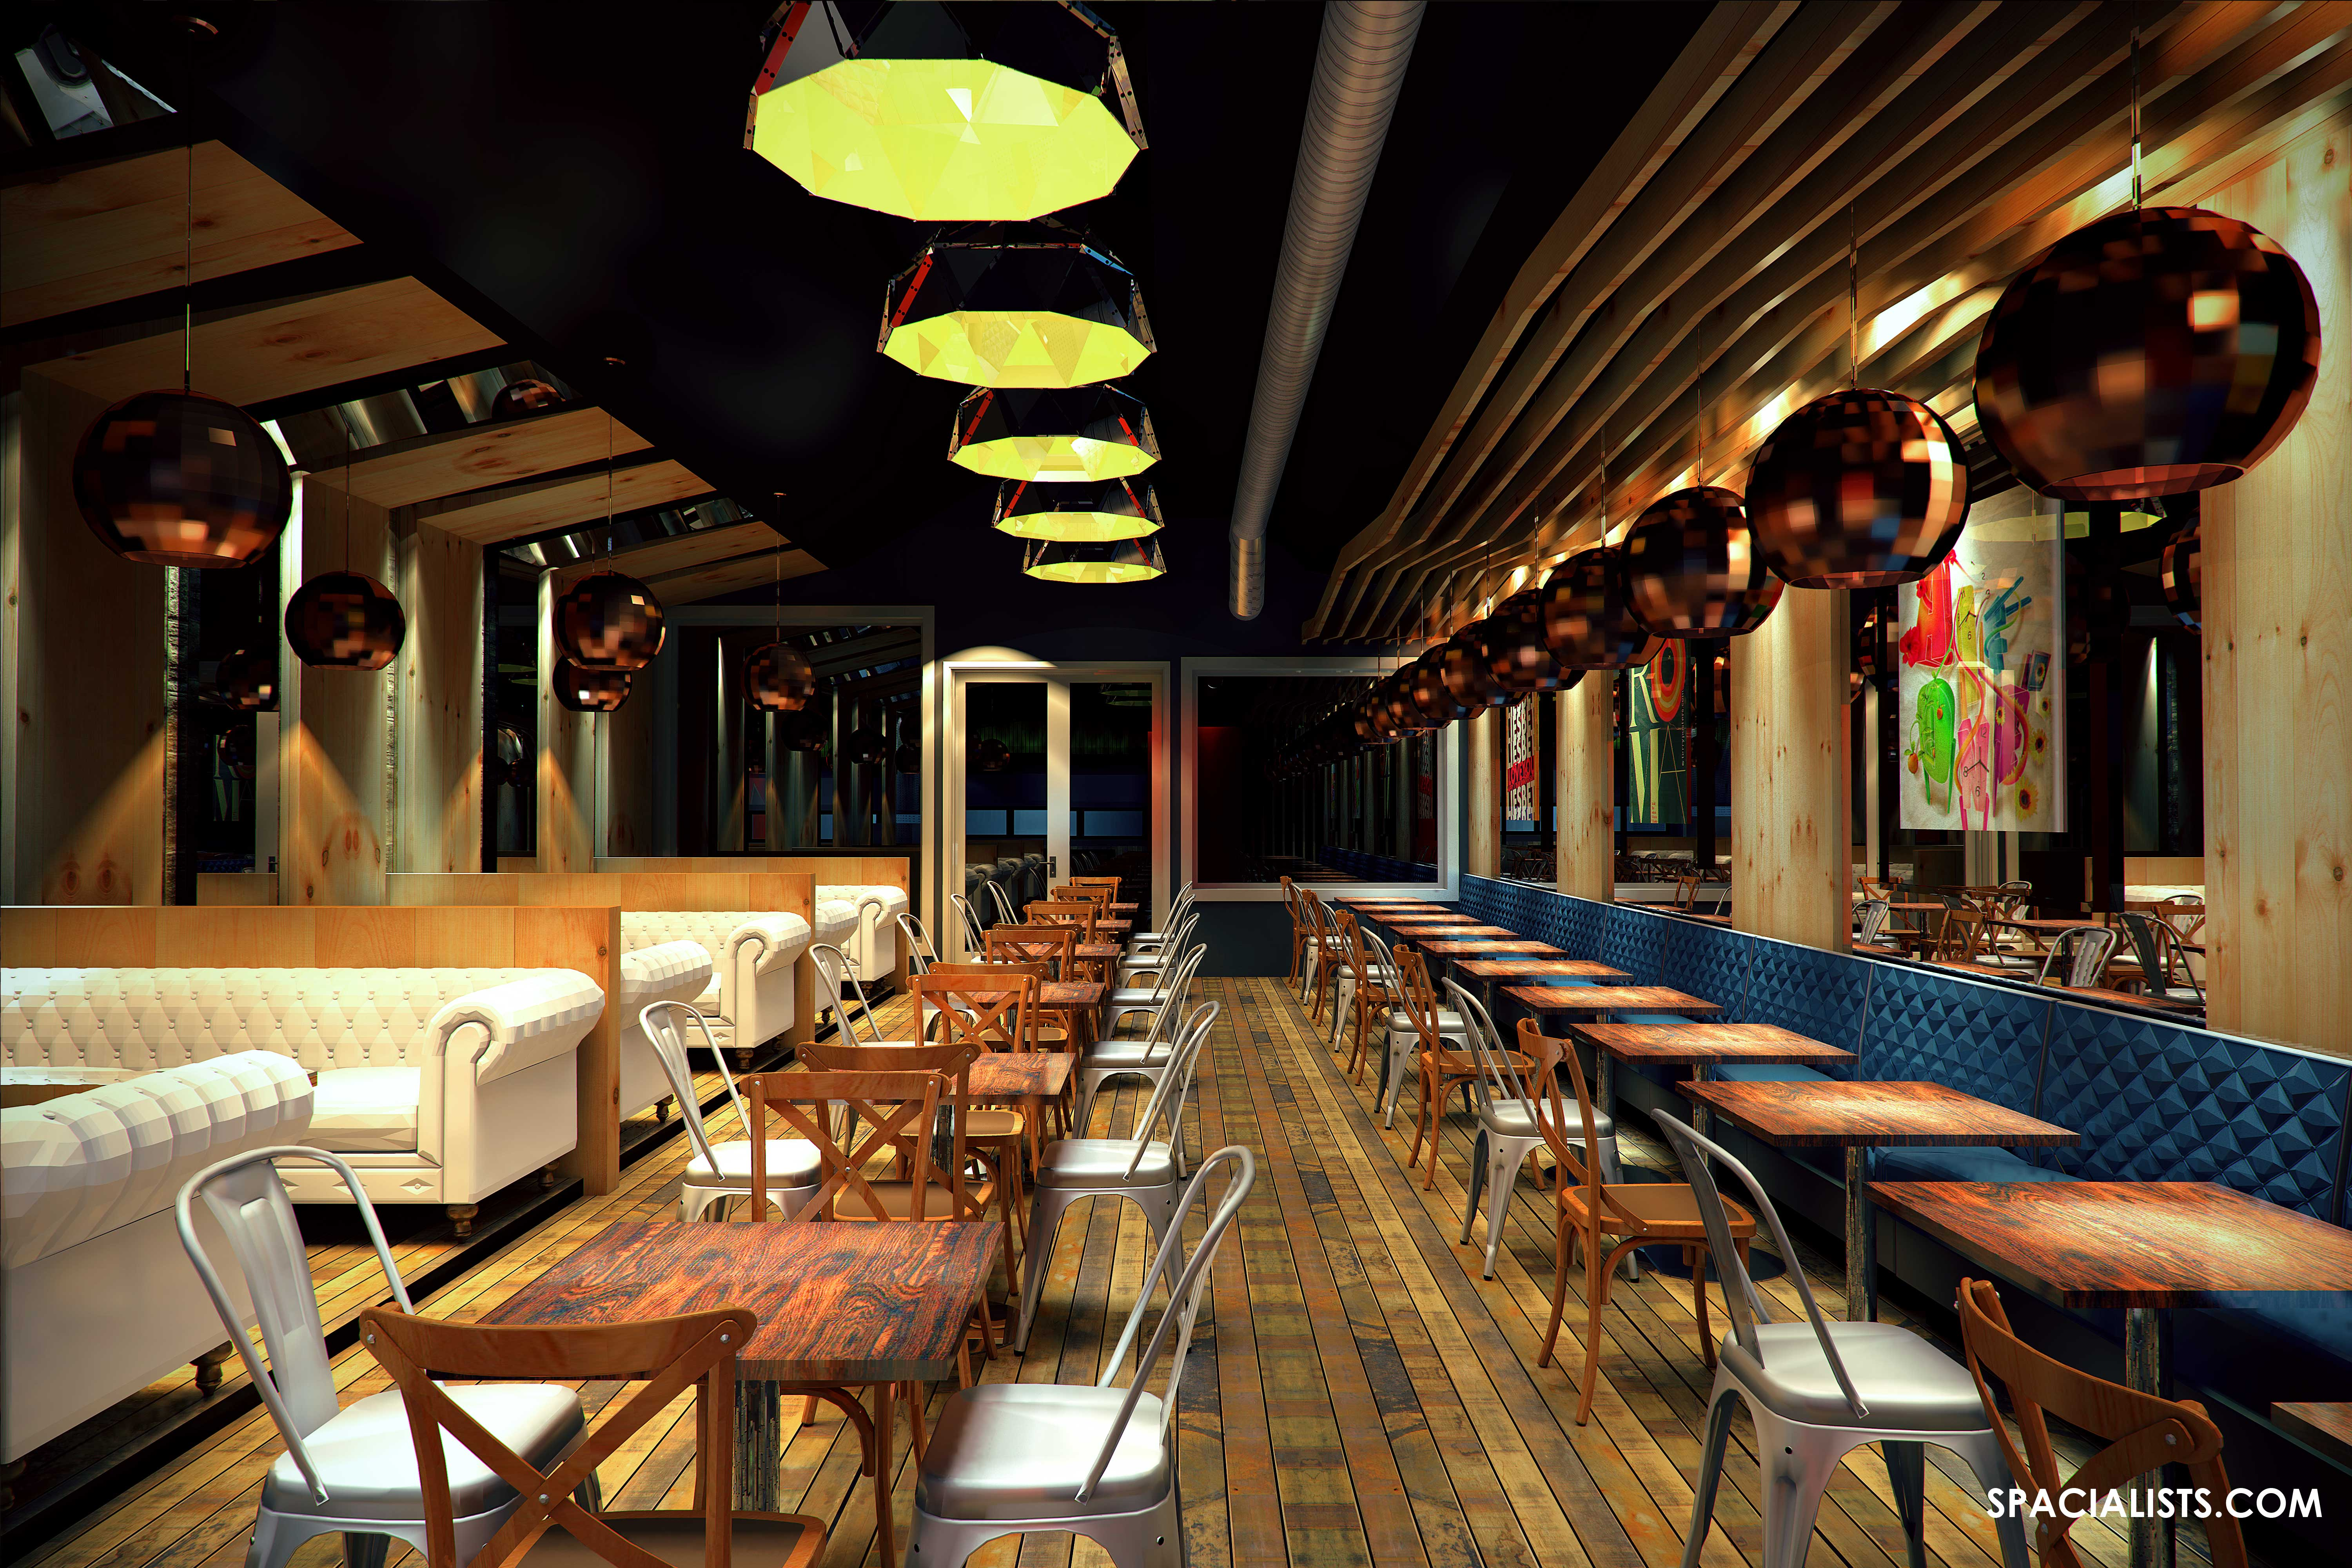 NEW RESTAURANT DESIGN  3D VISUALIZATION  SPACIALISTS Architectural Virtual Reality